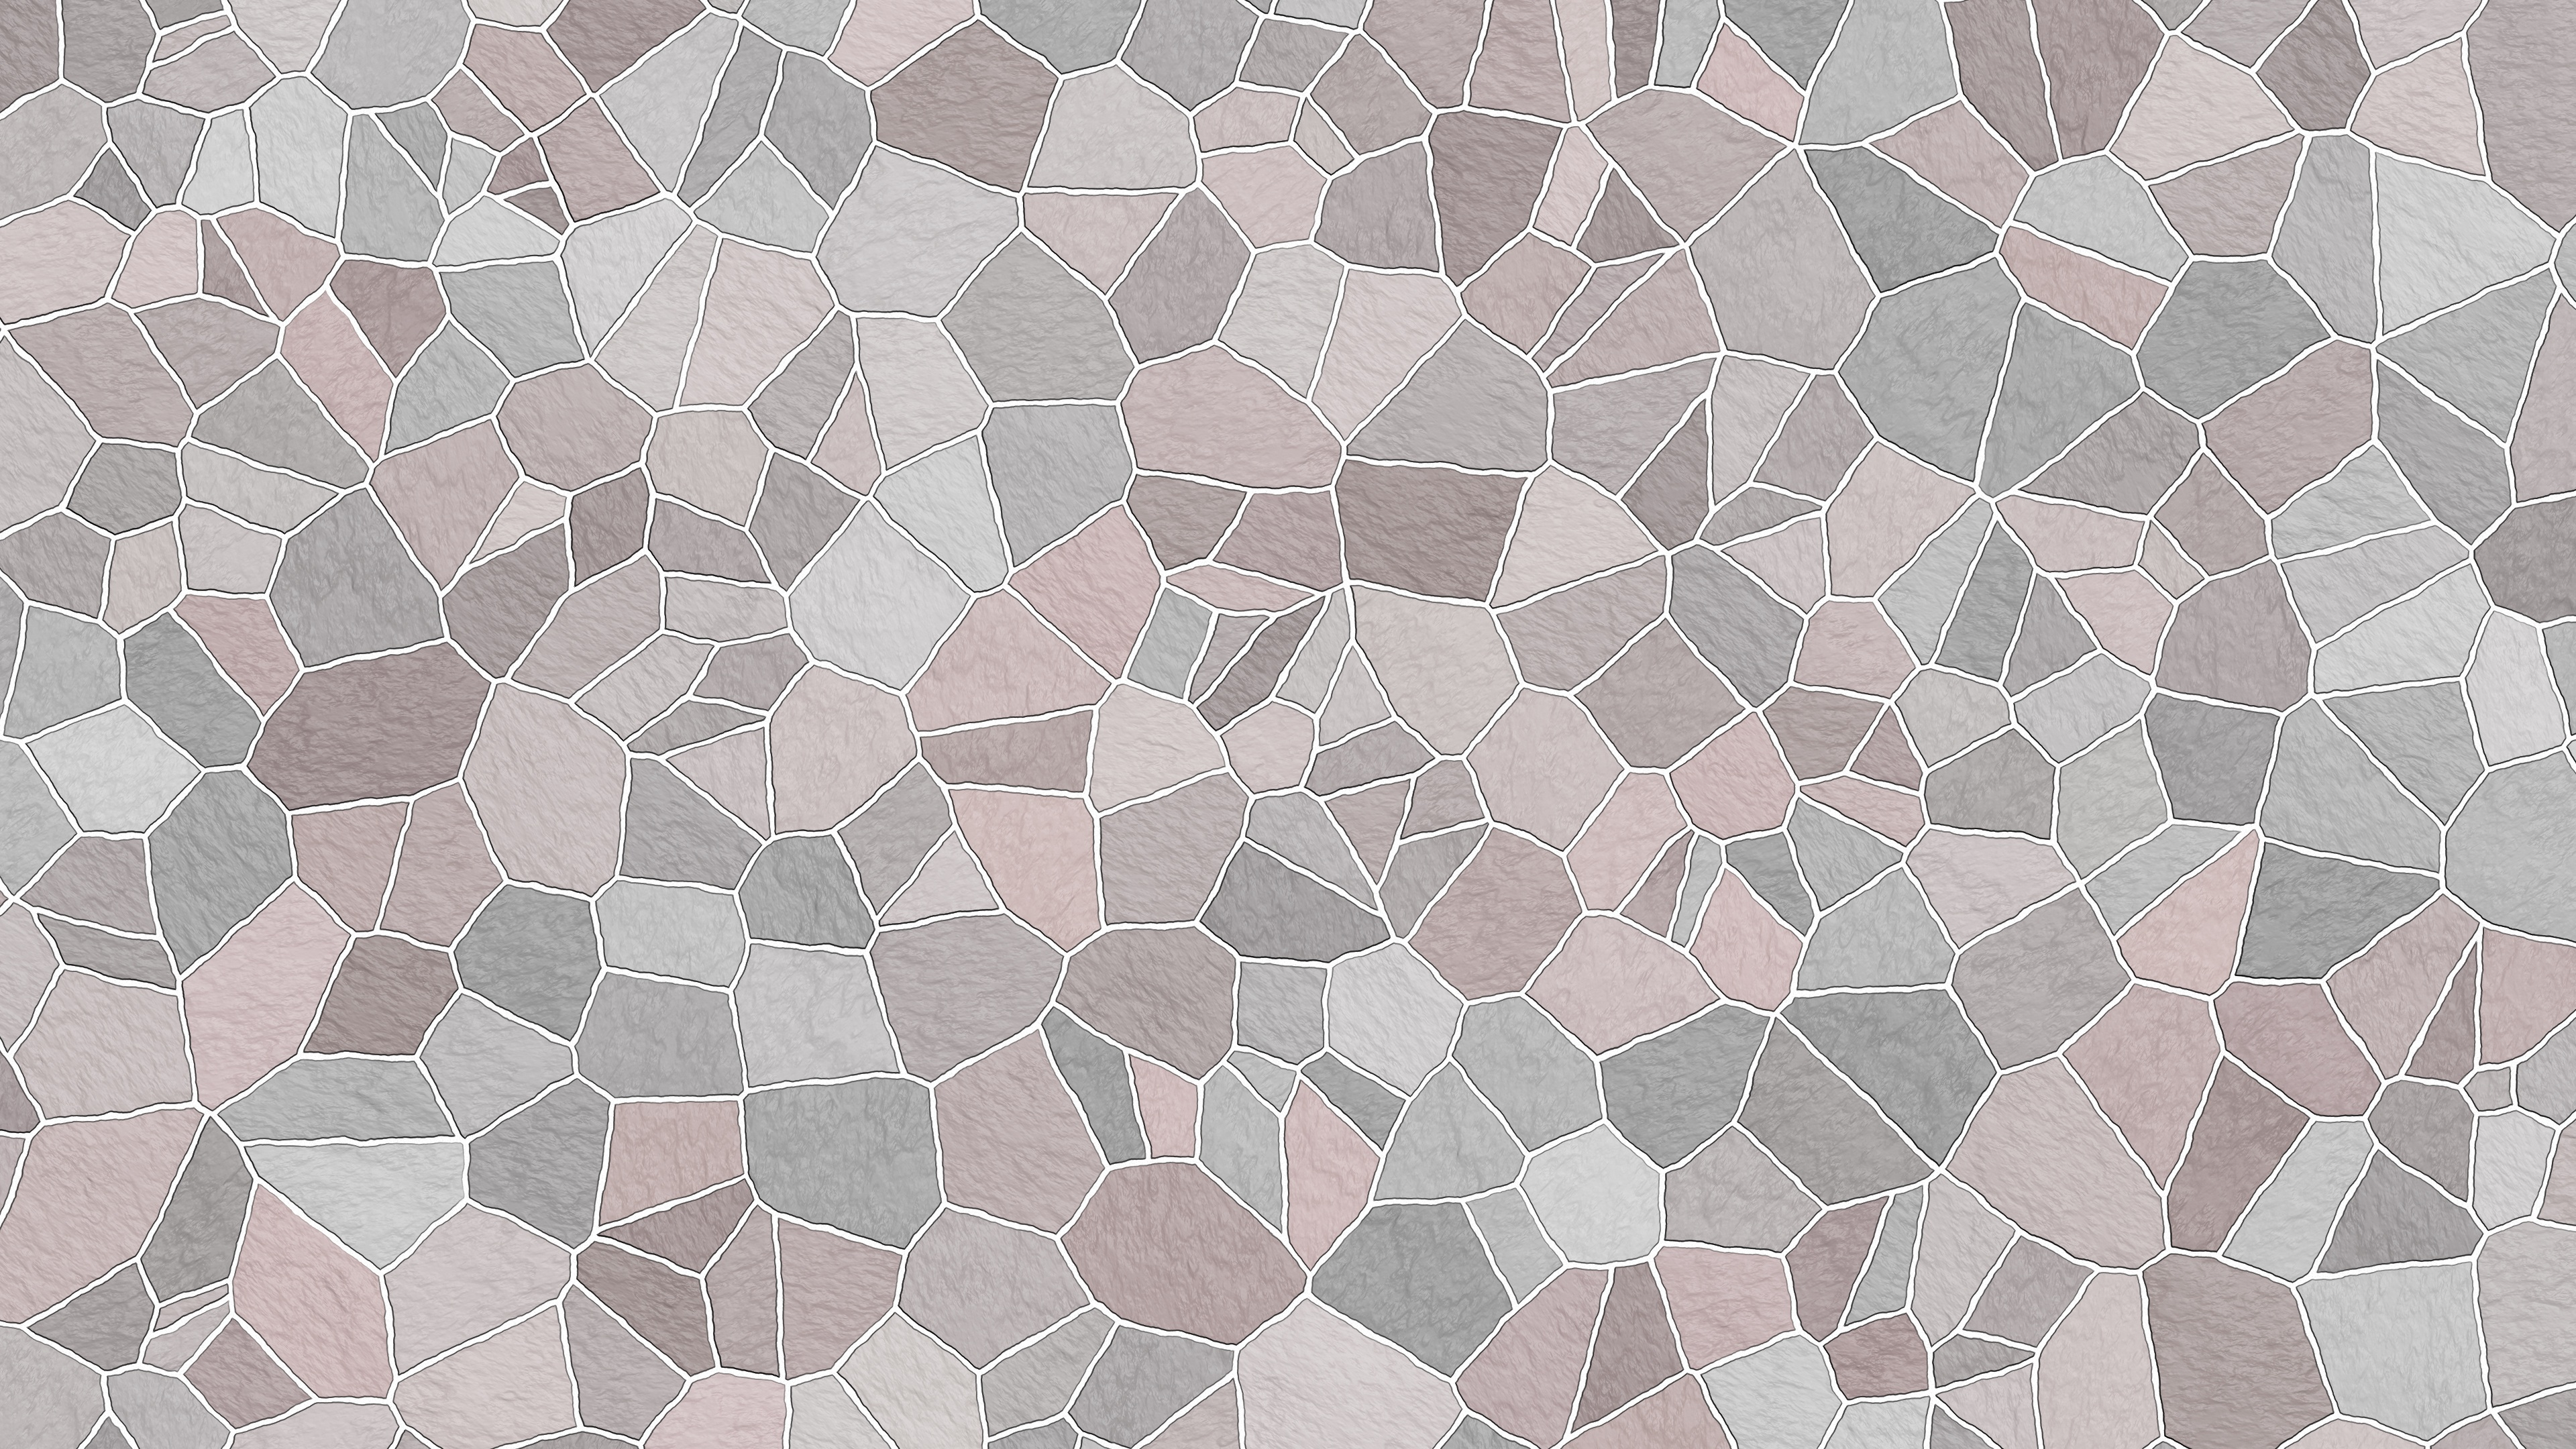 Pastel mosaic tile wallpaper 4k ultra hd wallpaper background image 3840x2160 id 892681 - Pastel background hd ...